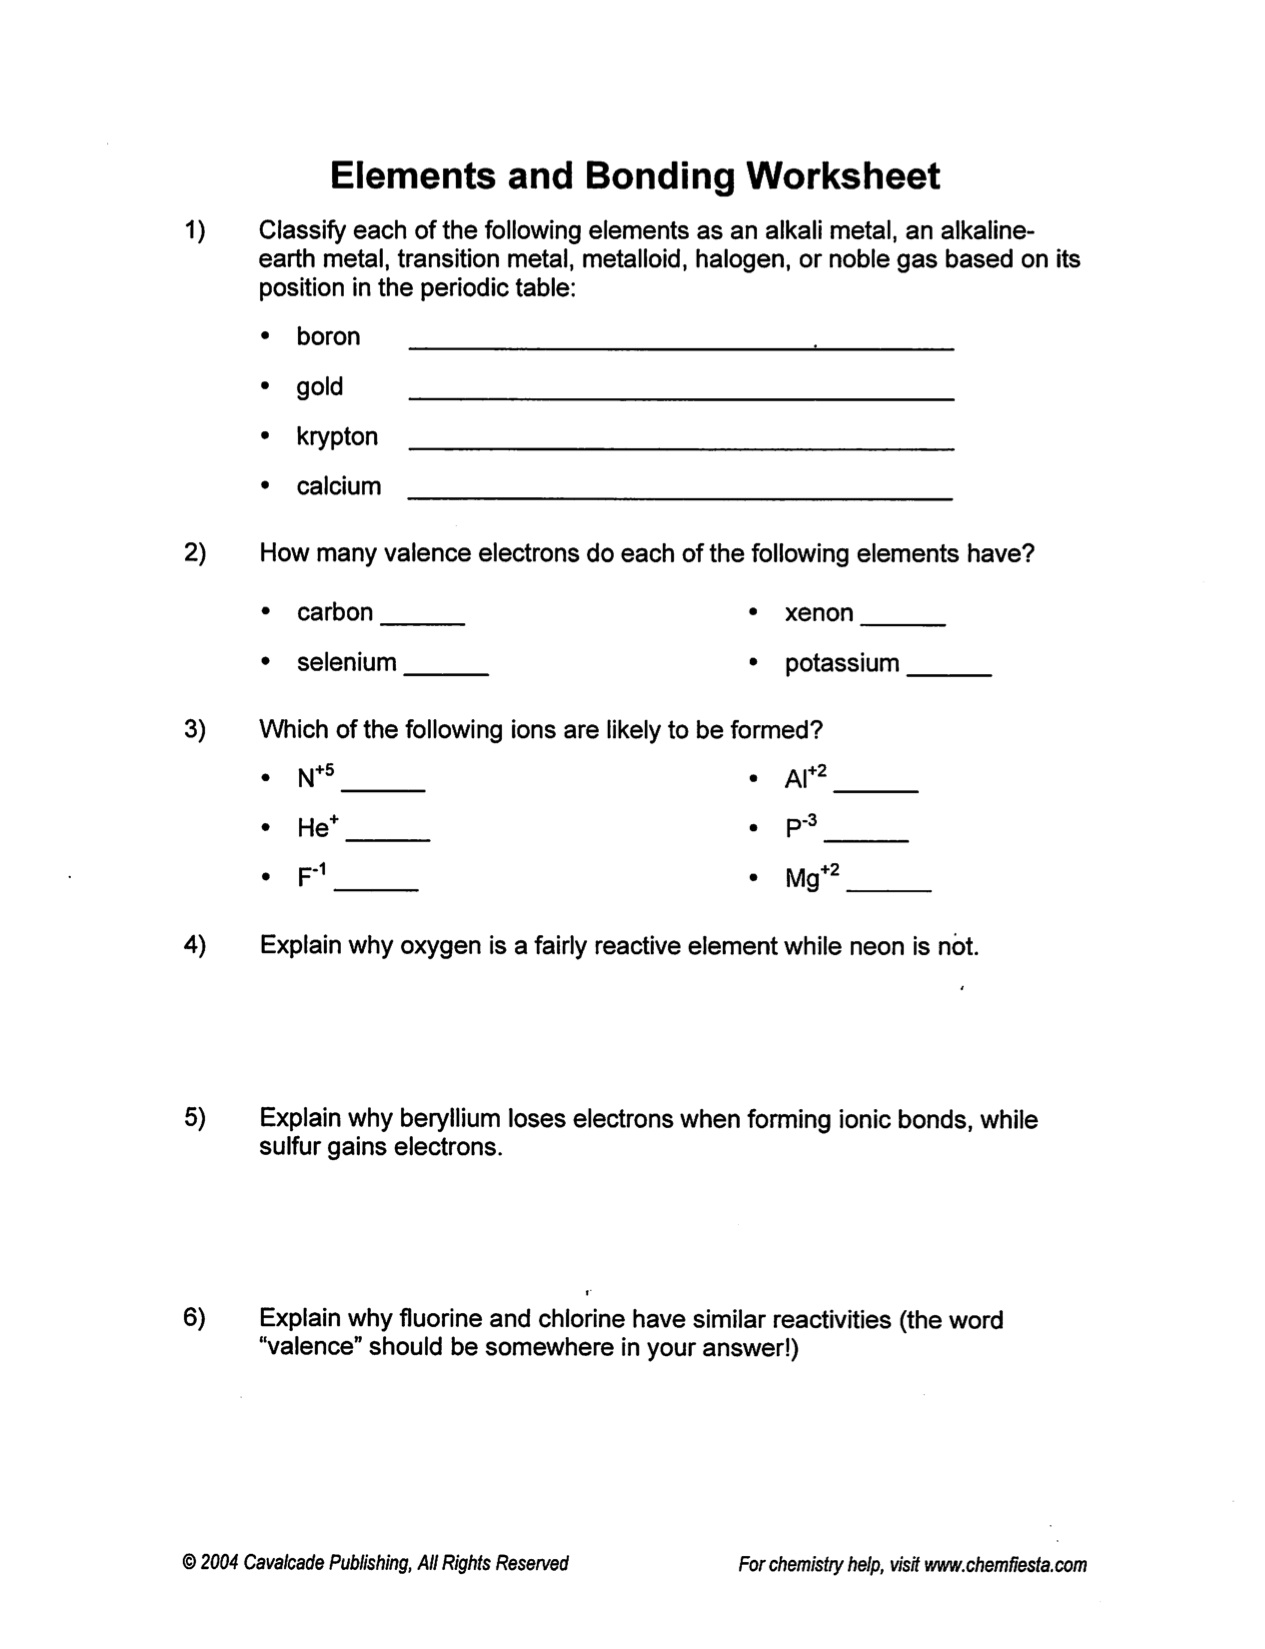 Worksheet Chemical Bonding Worksheet Answers chemical bonding worksheet answers imperialdesignstudio pin answer doc limjunyang on pinterest